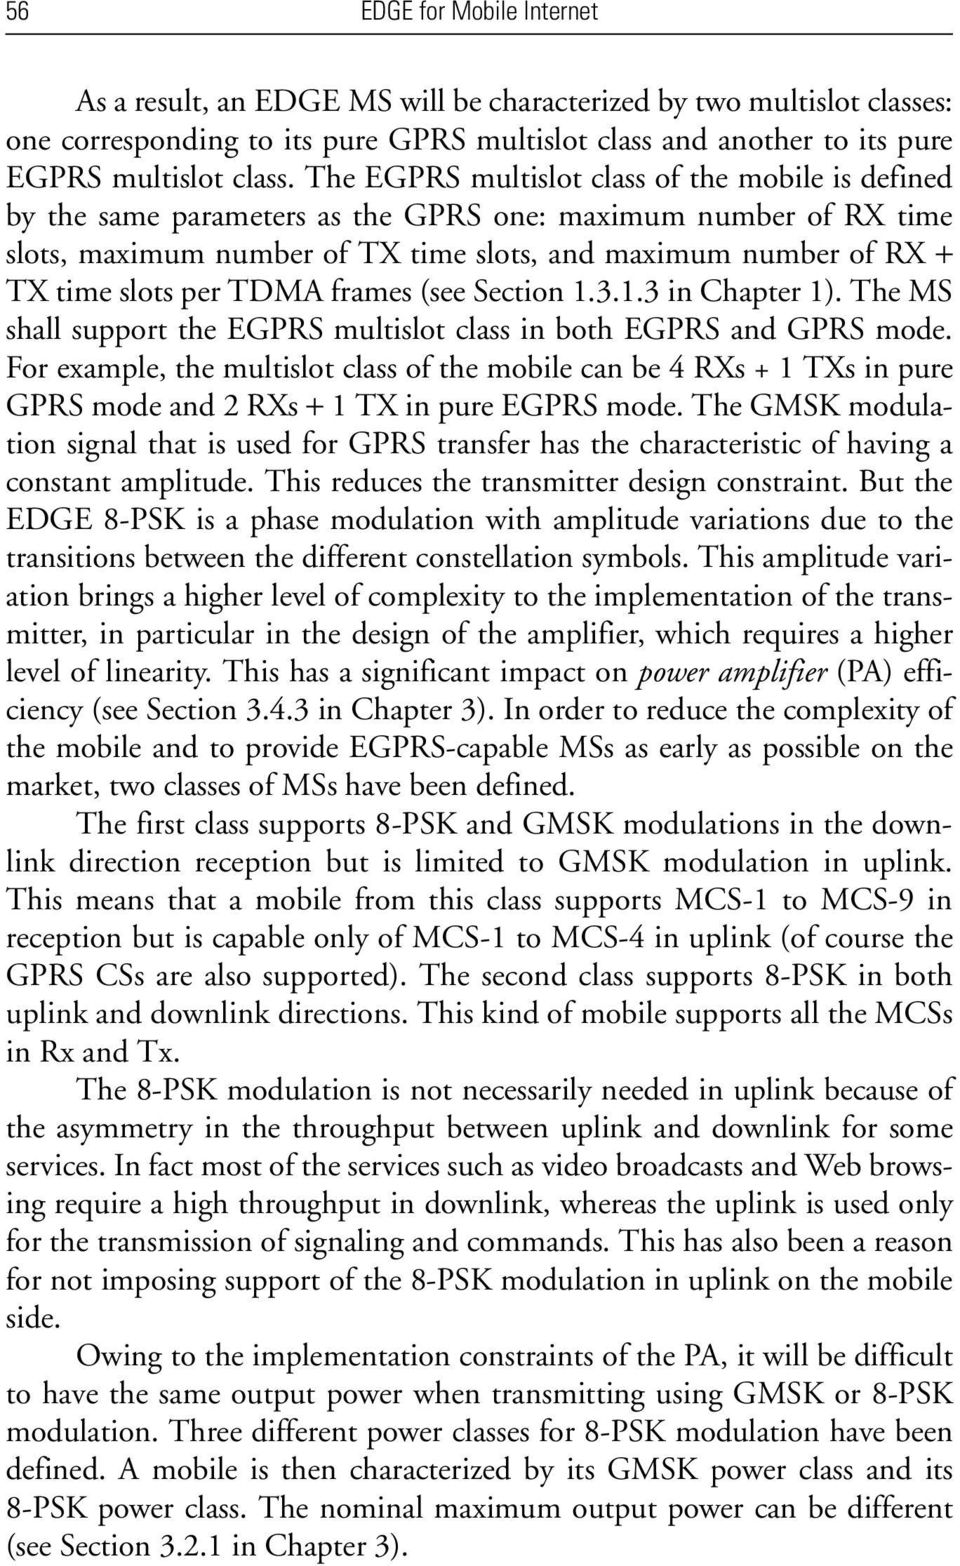 per TDMA frames (see Section 1.3.1.3 in Chapter 1). The MS shall support the EGPRS multislot class in both EGPRS and GPRS mode.